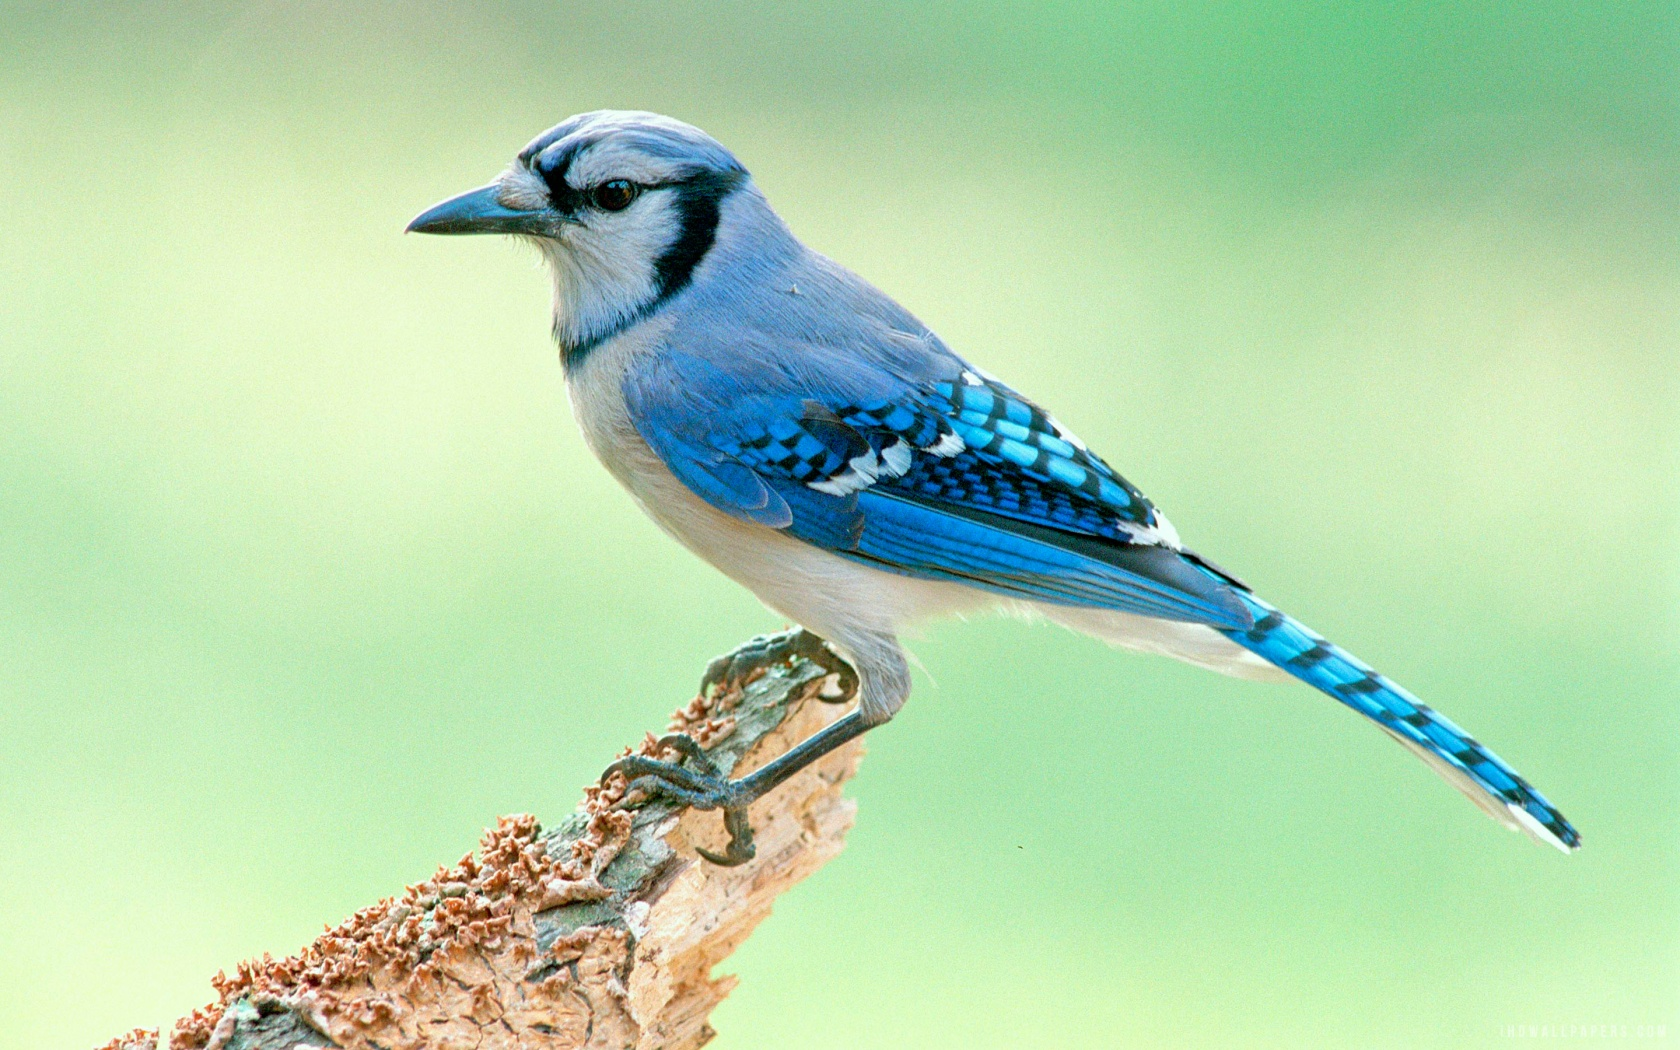 Blue Jay Bird HD Wallpaper   iHD Wallpapers 1680x1050